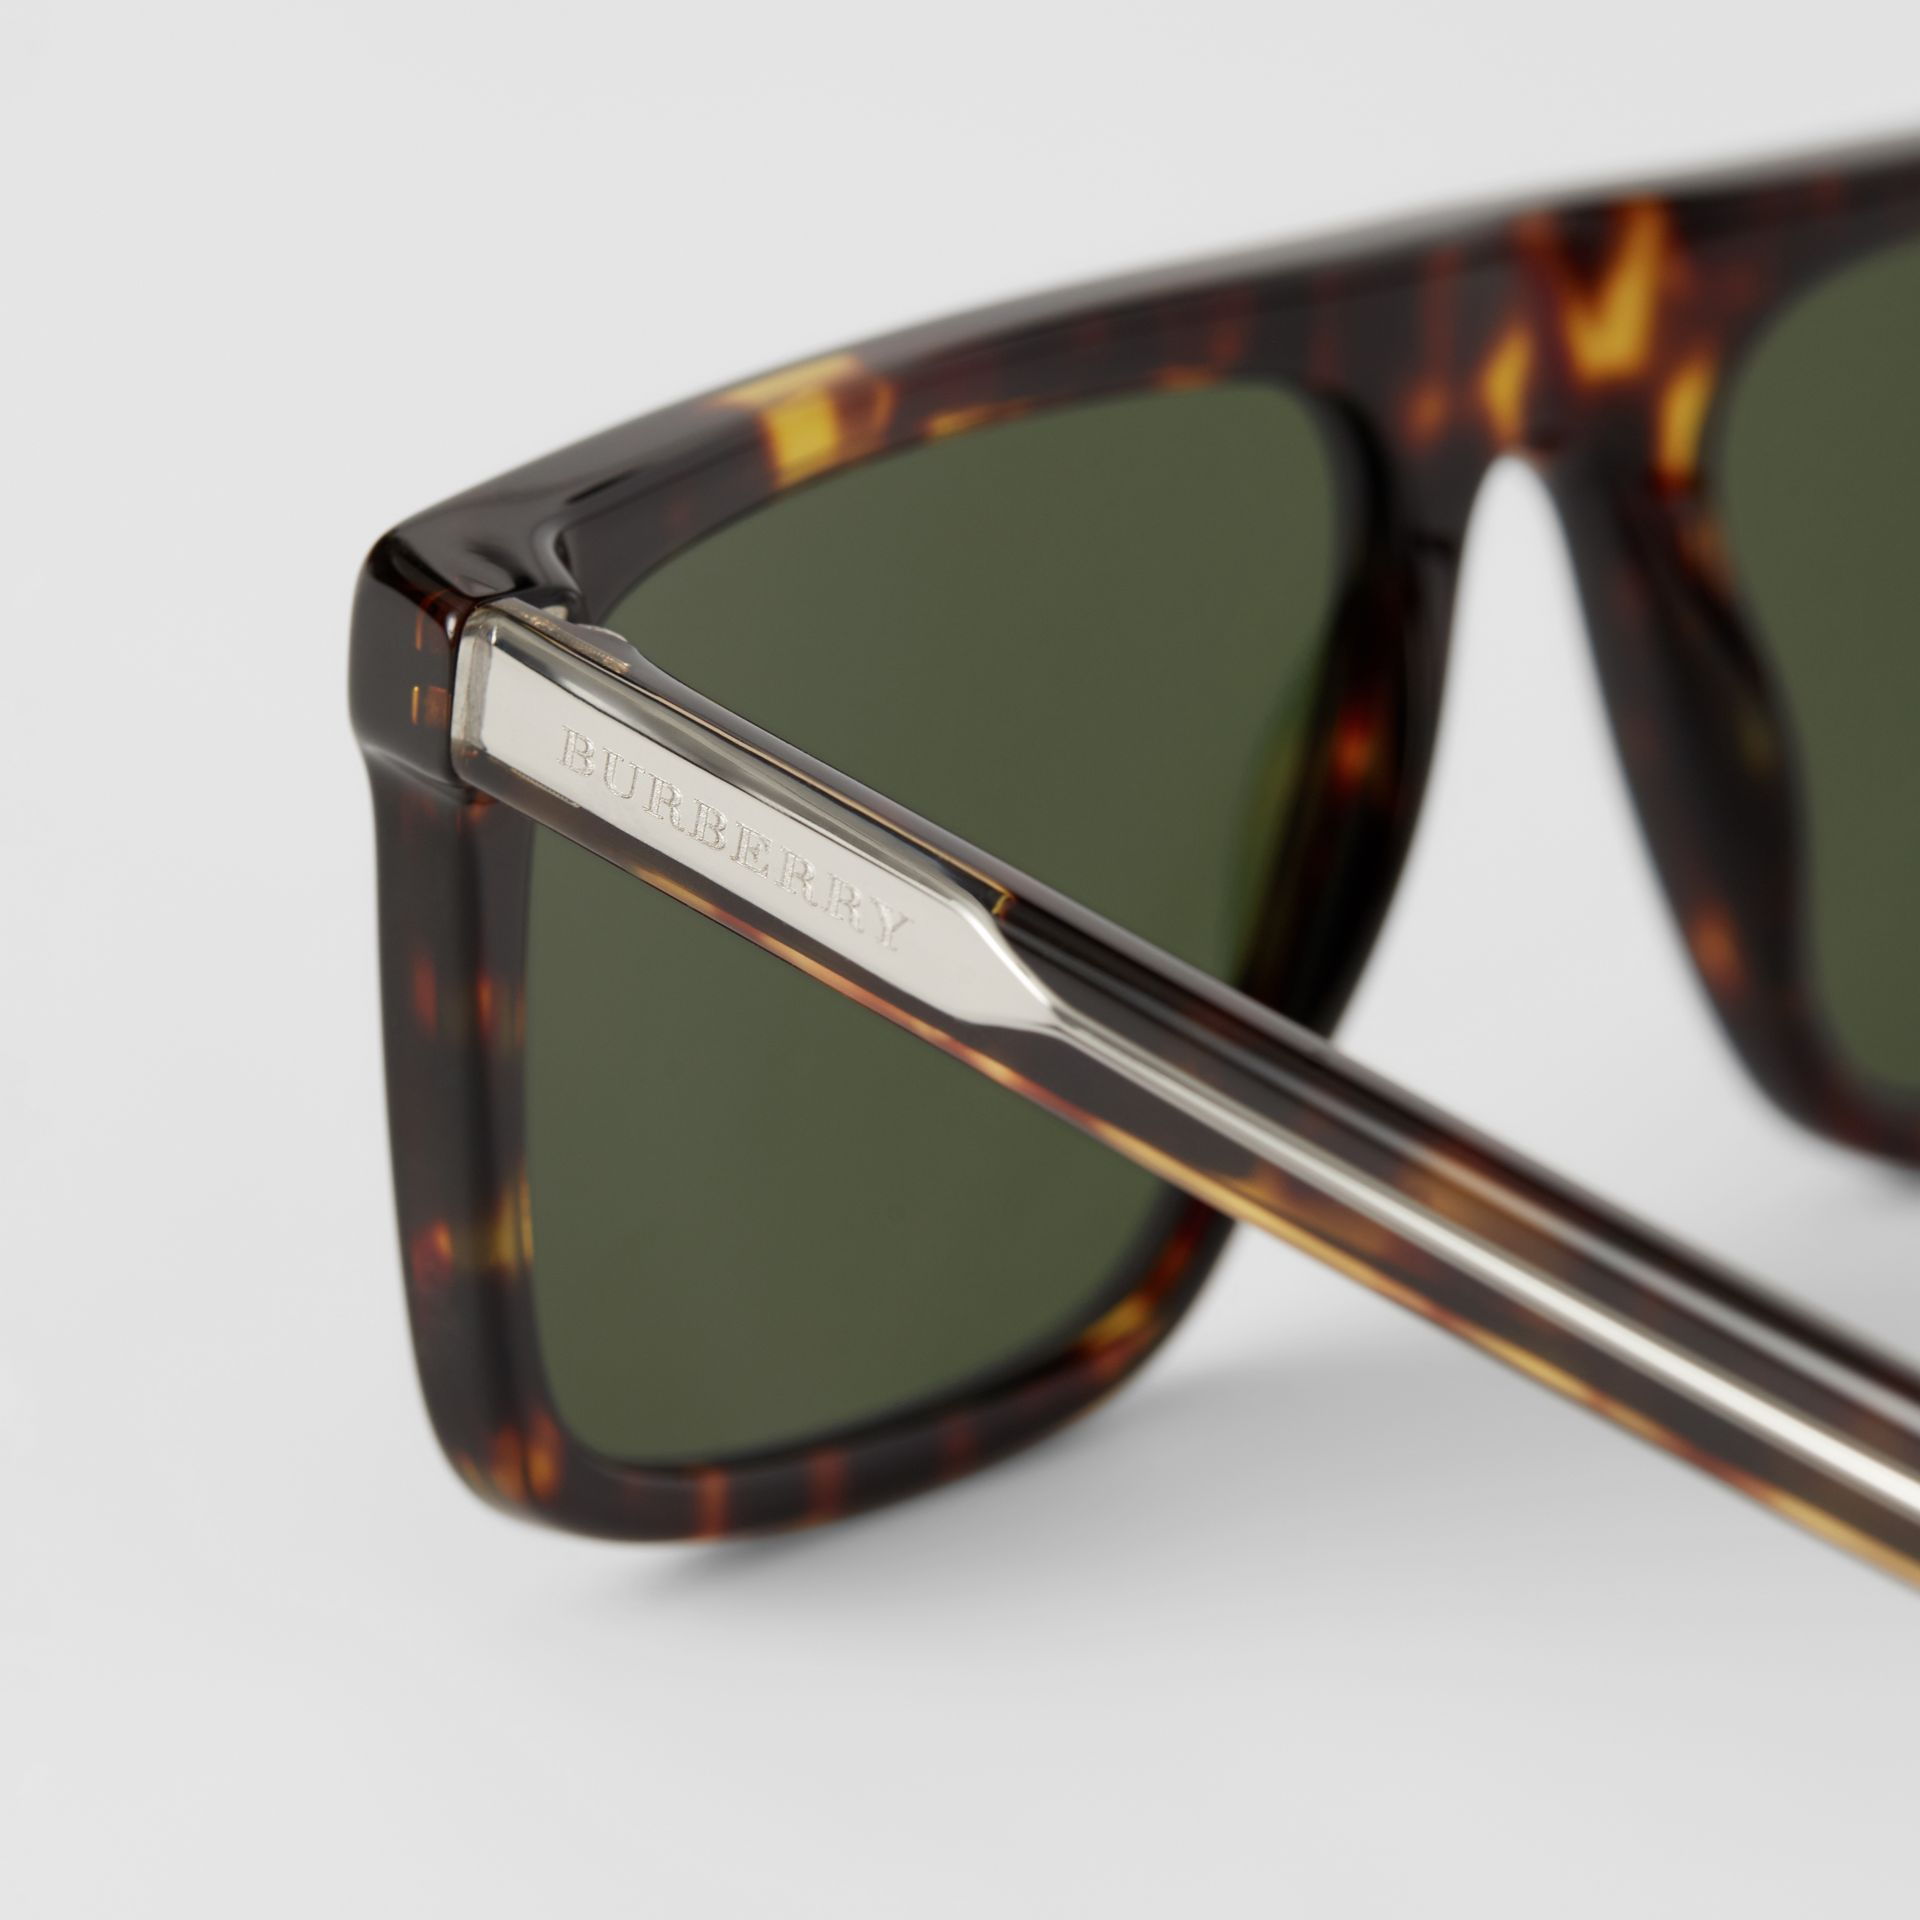 Straight-brow Sunglasses in Tortoise Shell - Men | Burberry Australia - gallery image 1